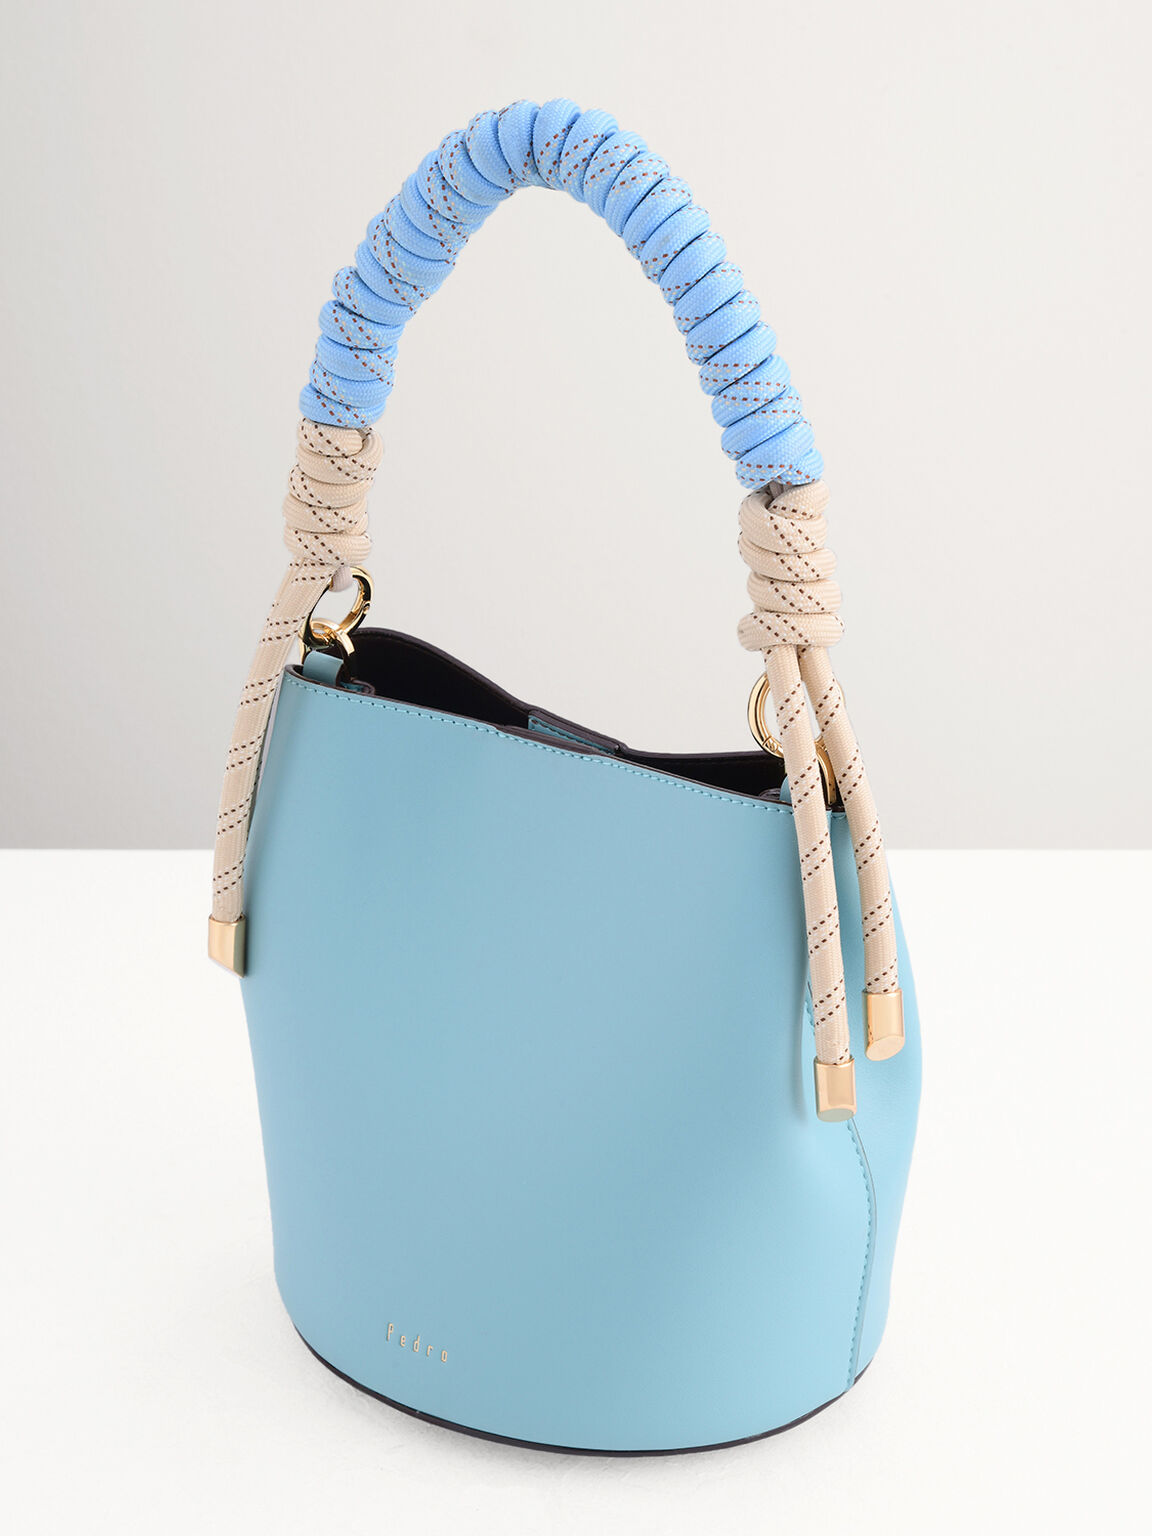 Bucket Bag with Rope Detailing, Turquoise, hi-res